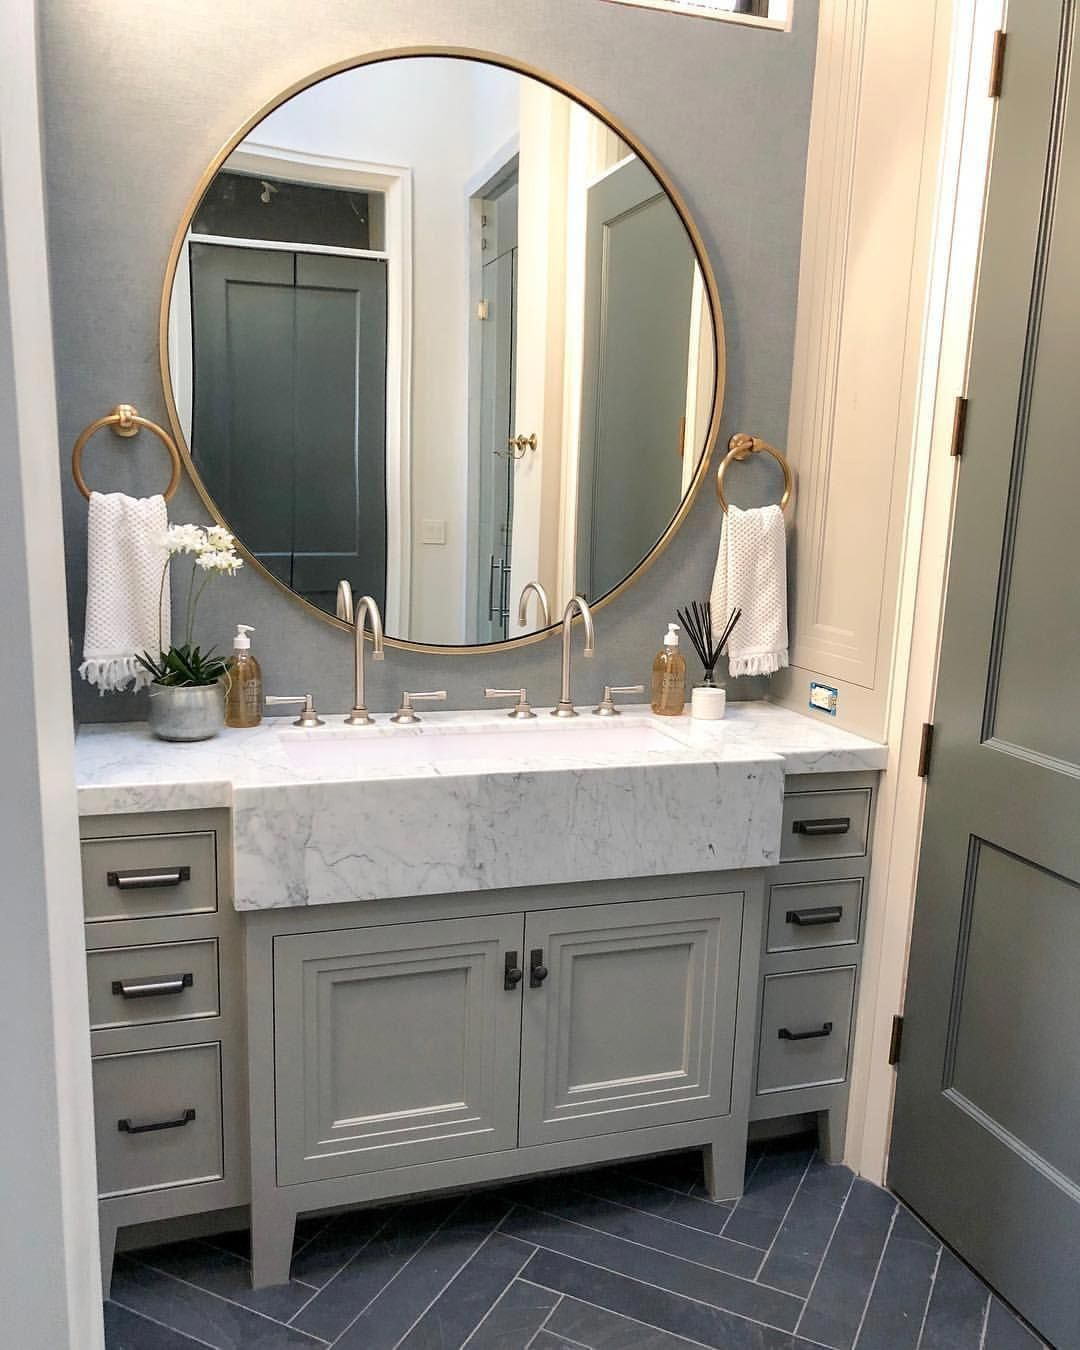 check this out bathroom renovation ideas in 2020  small